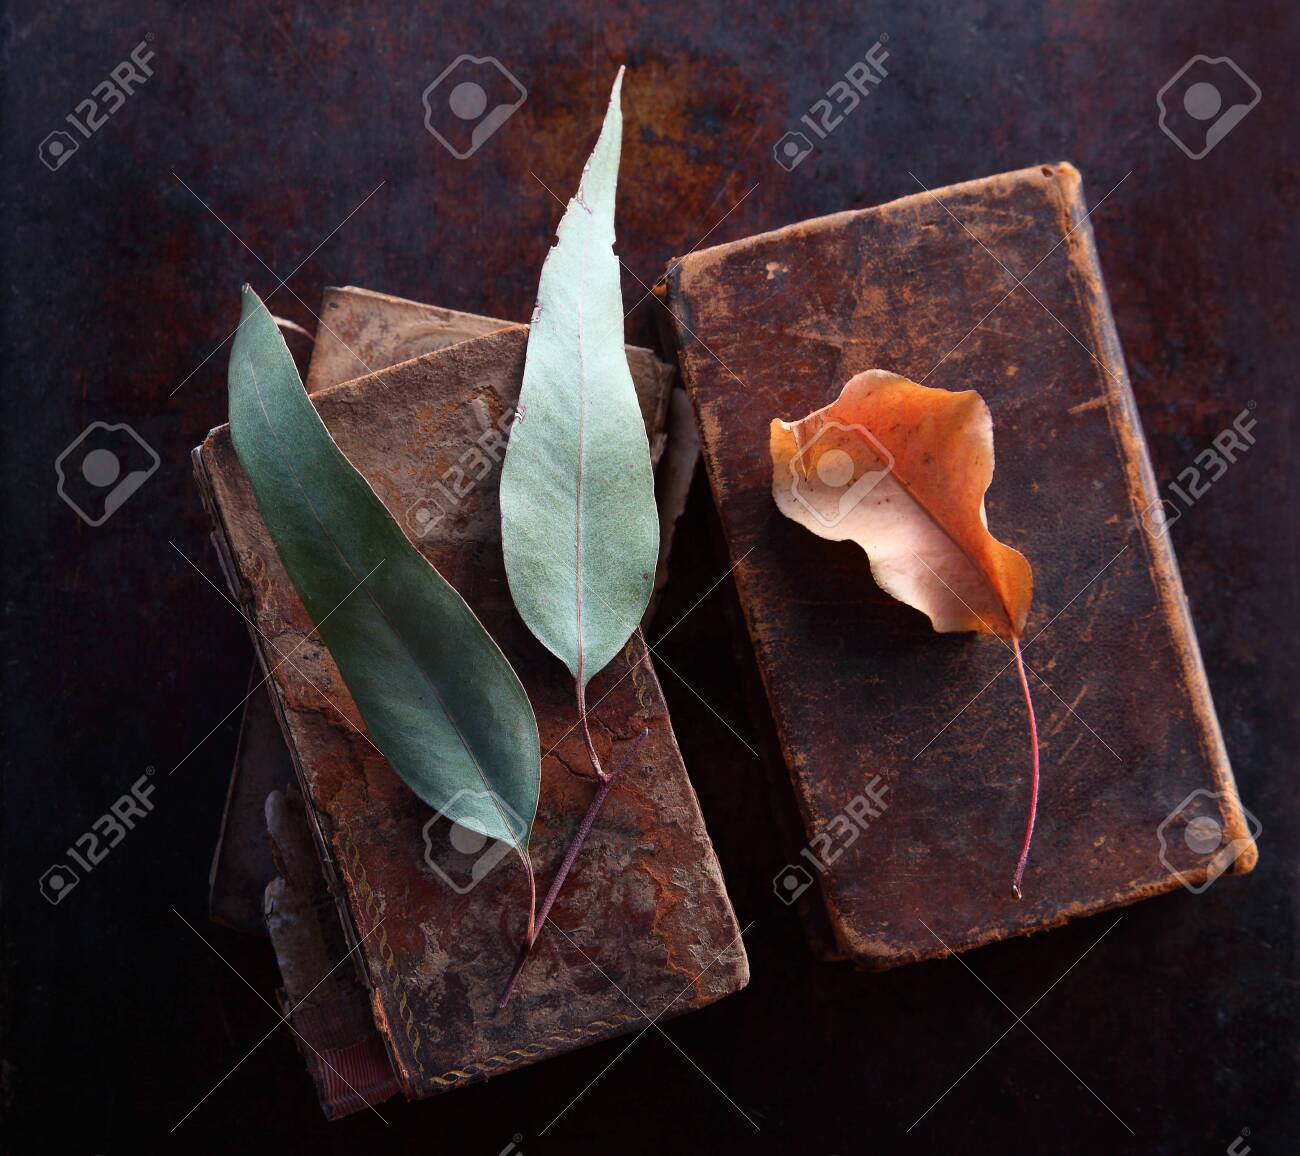 Pastel-colored leaves on old, well-used books with copy space - 141340231